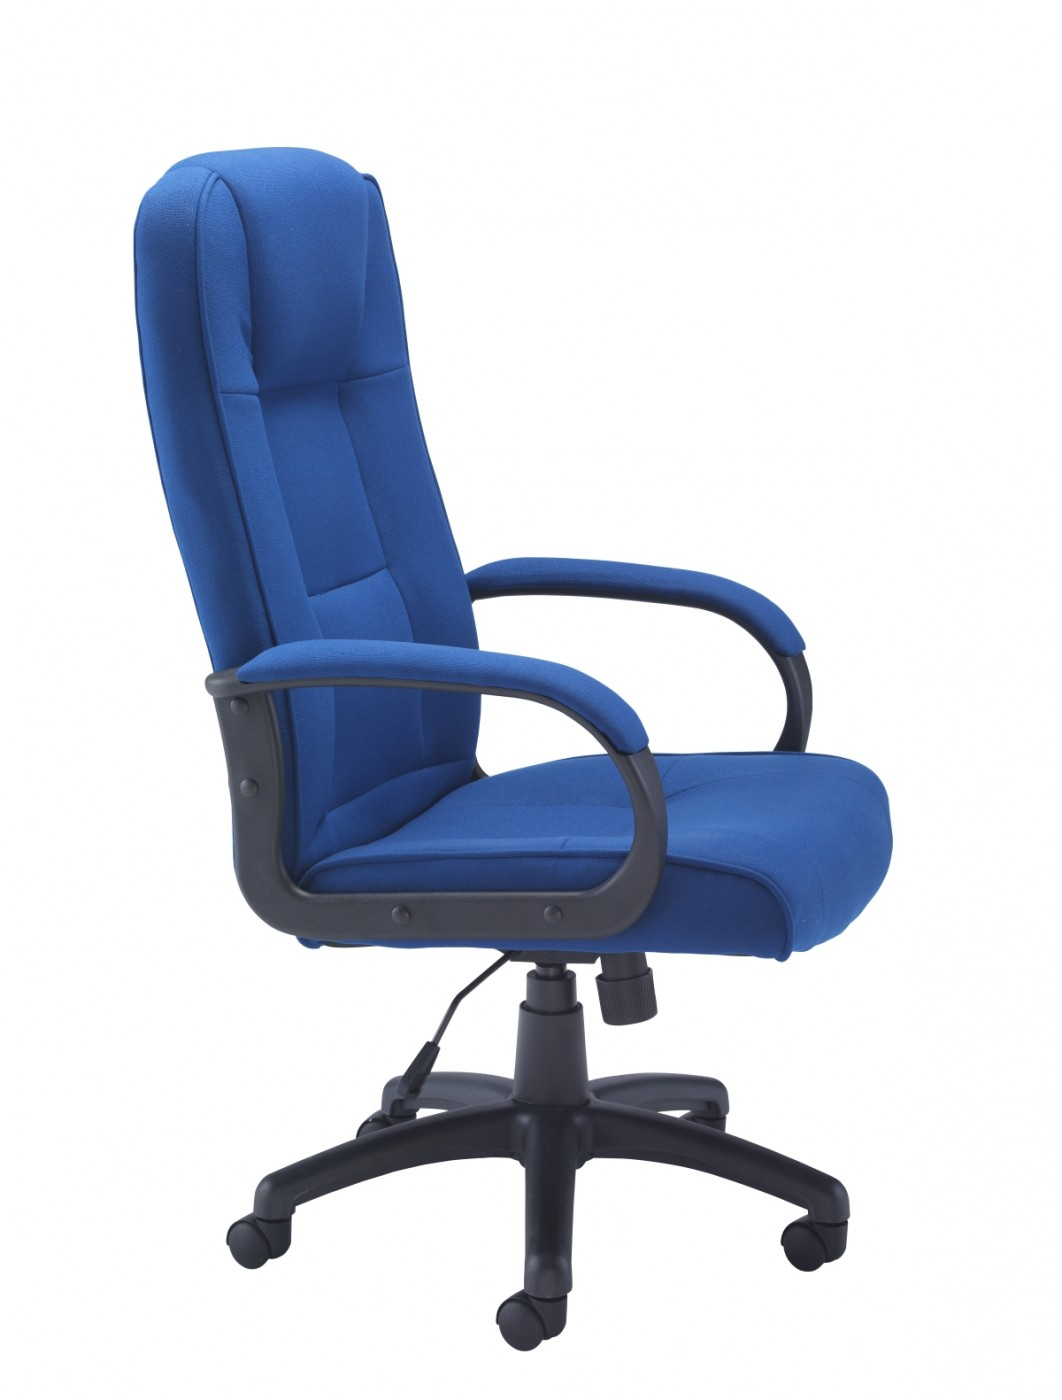 Keno ch0137 fabric office chair enlarged view